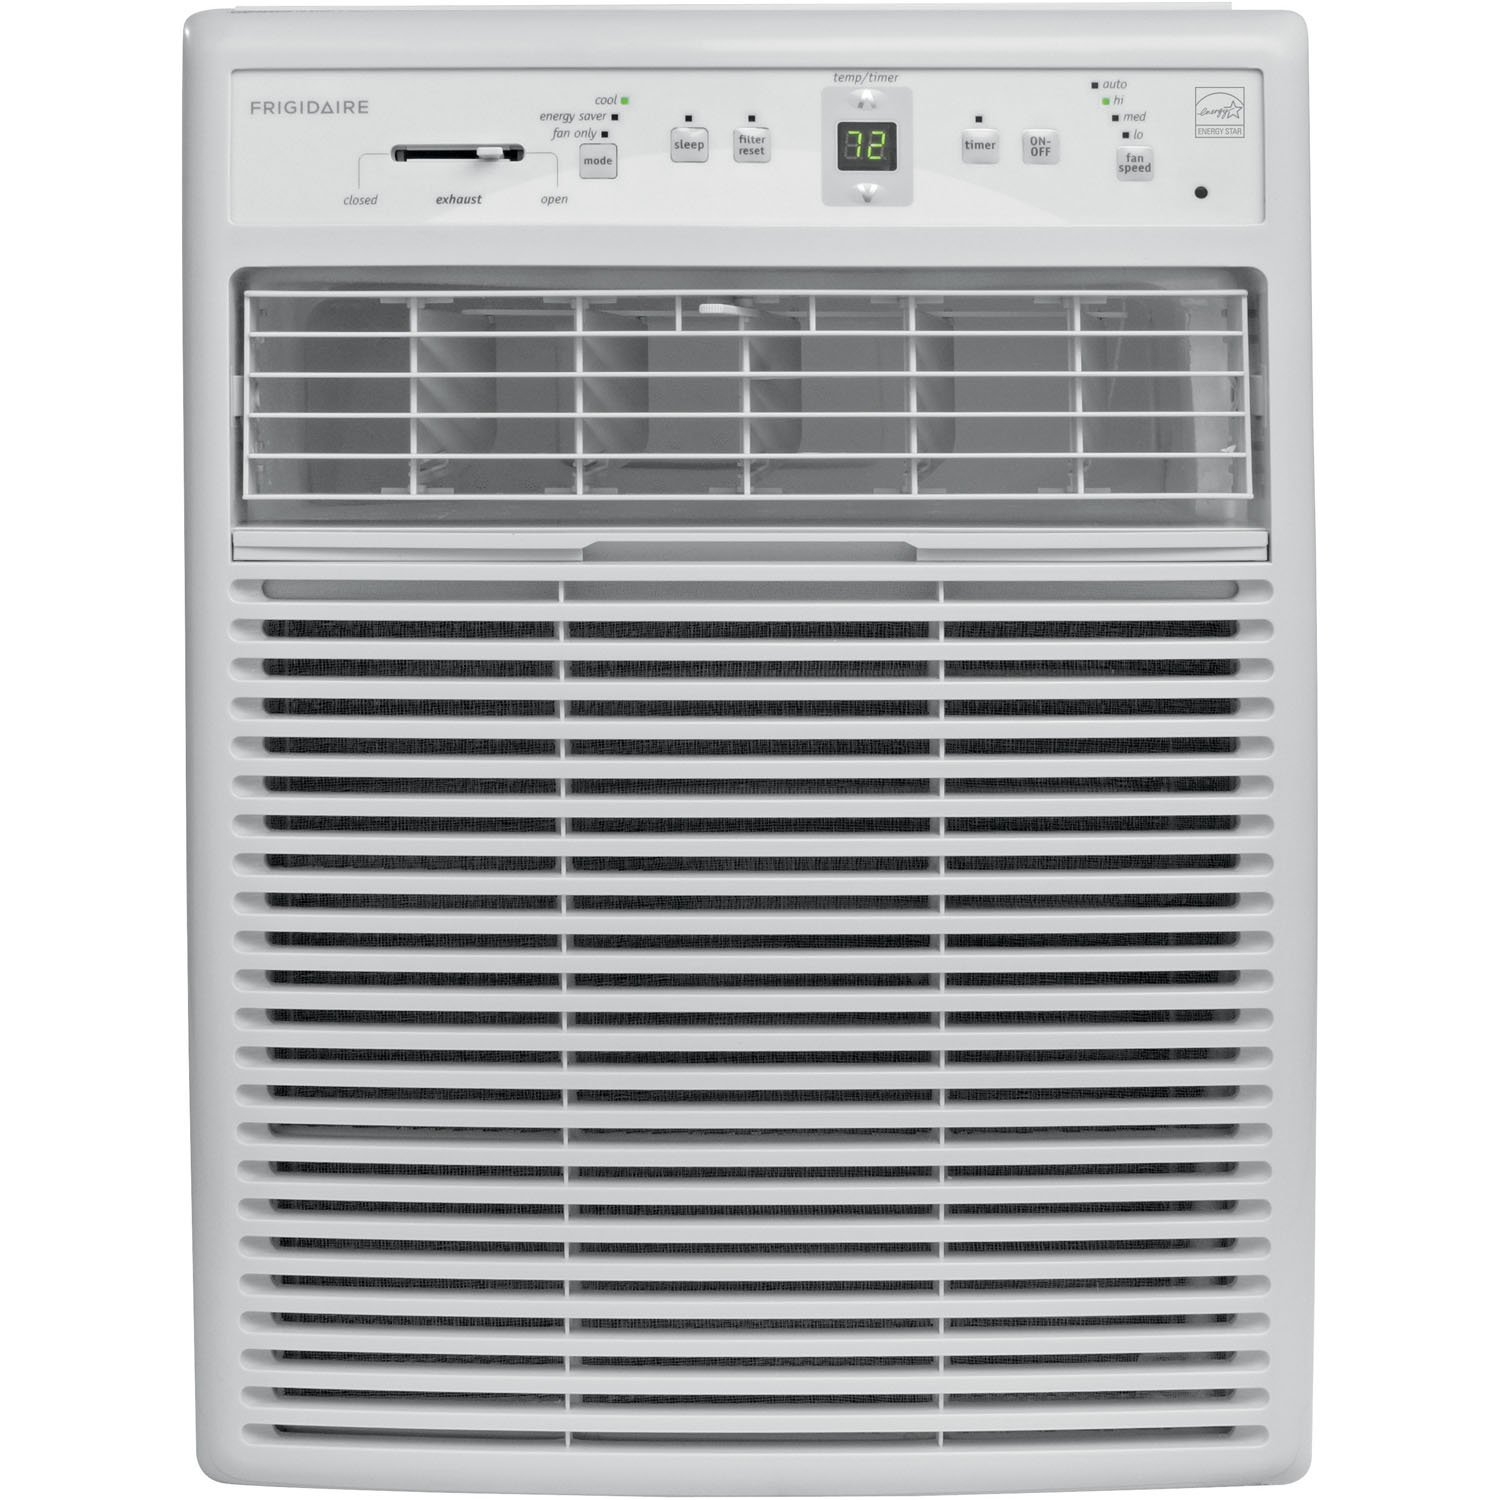 Amazon.com: Frigidaire FFRS0833Q1 8,000 BTU 115V Slider/Casement Room Air  Conditioner with Full-Function Remote Control: Home & Kitchen